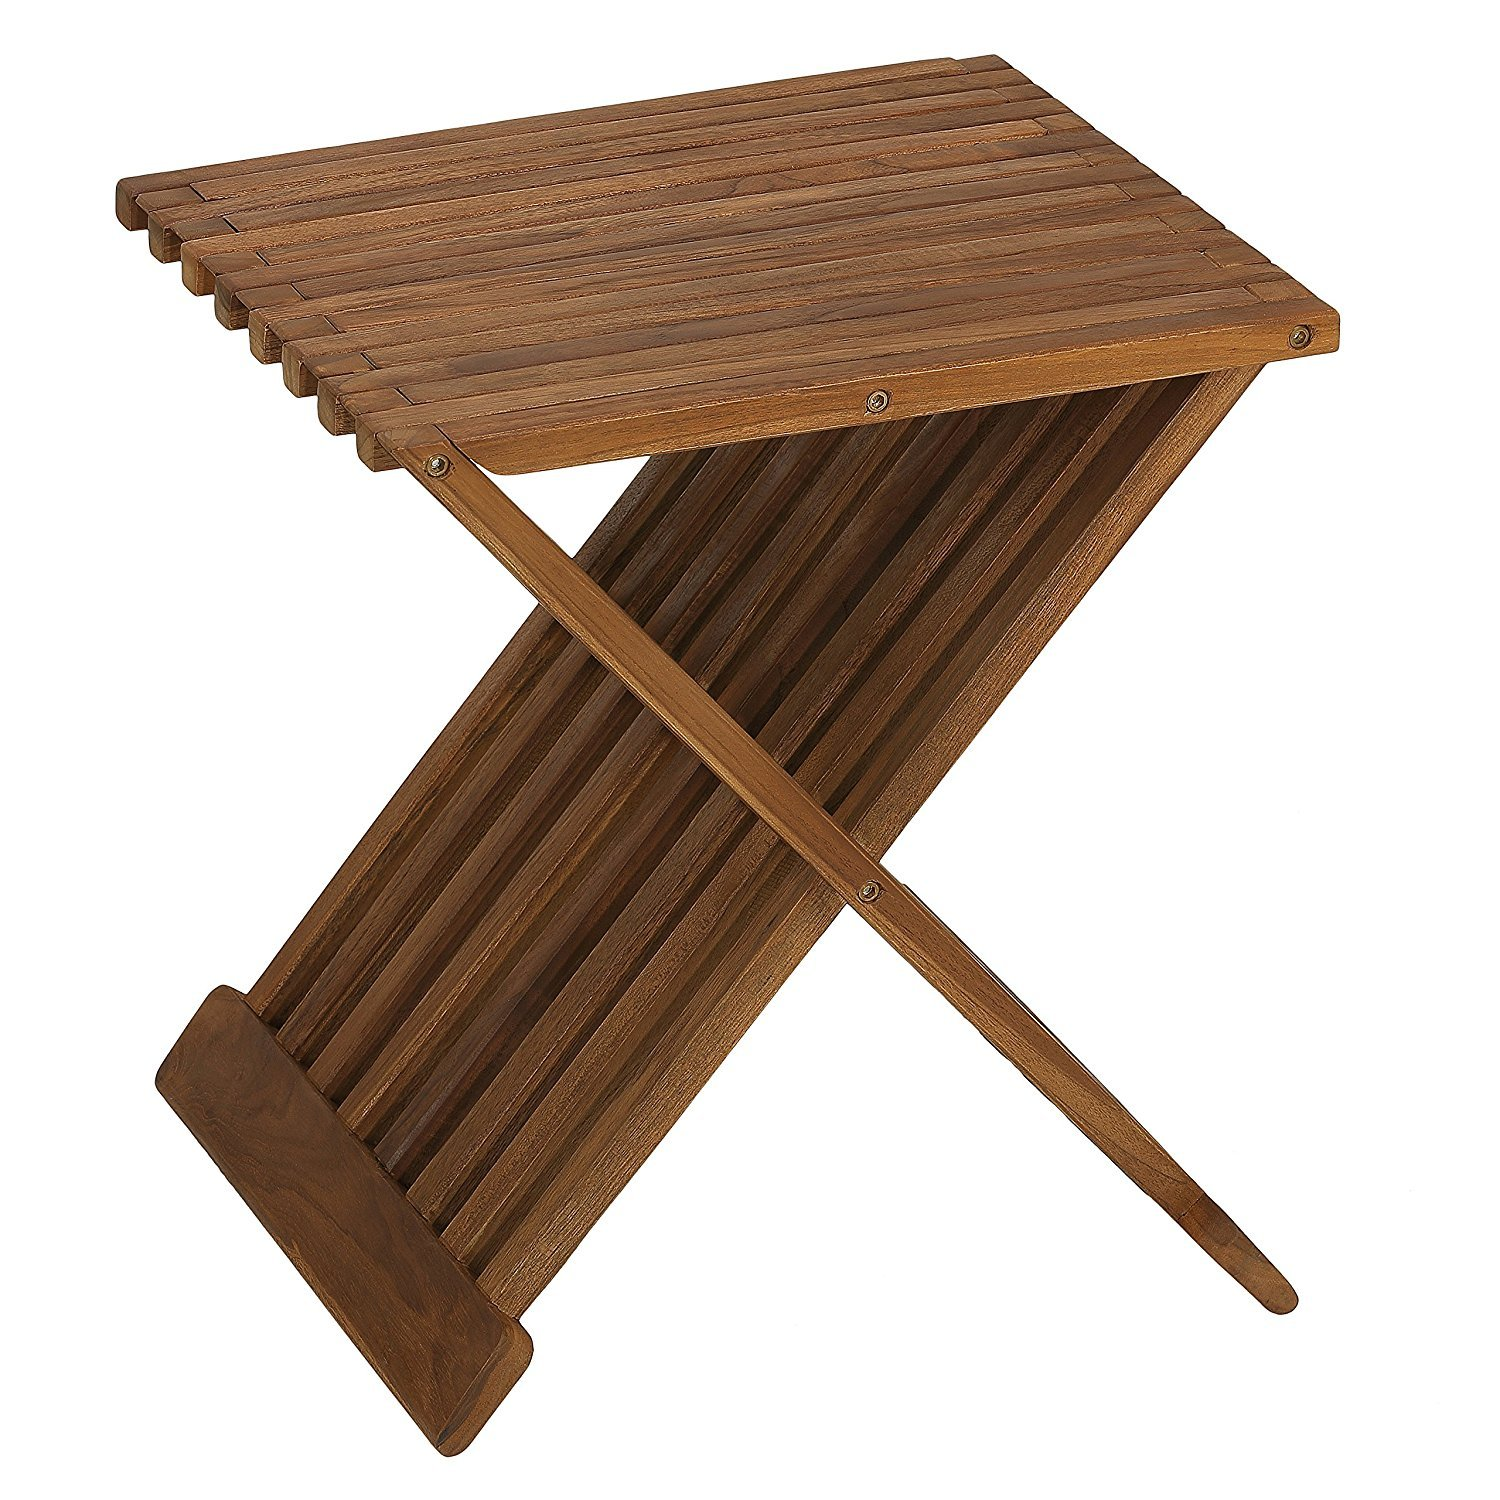 Bare Decor Rocco Folding Stool in Solid Teak Wood, Brown, 17 Inch BARE-AC4061